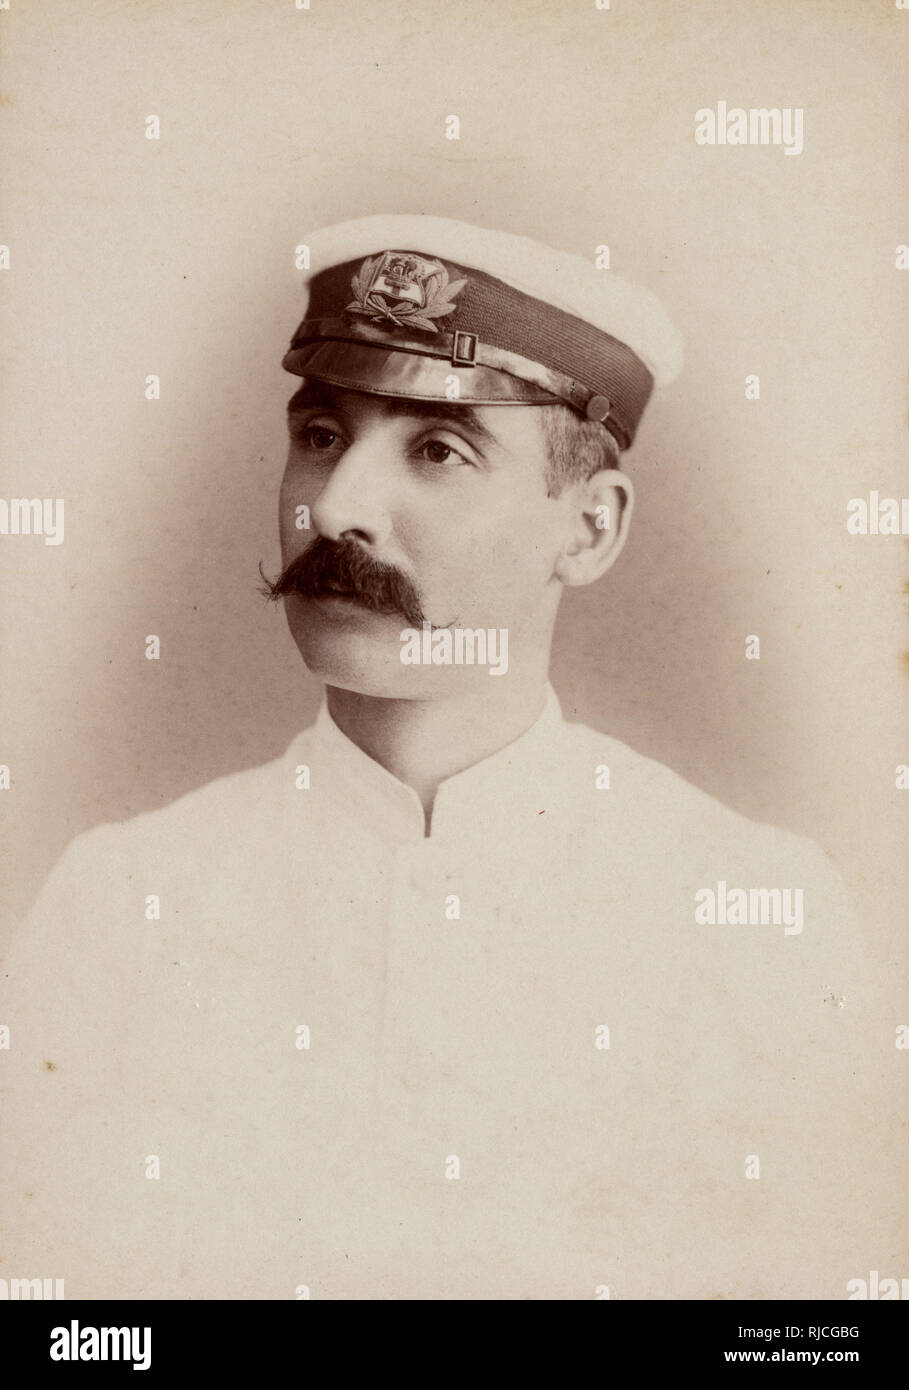 Cabinet photograph - Royal Navy Officer stationed in India. Stock Photo